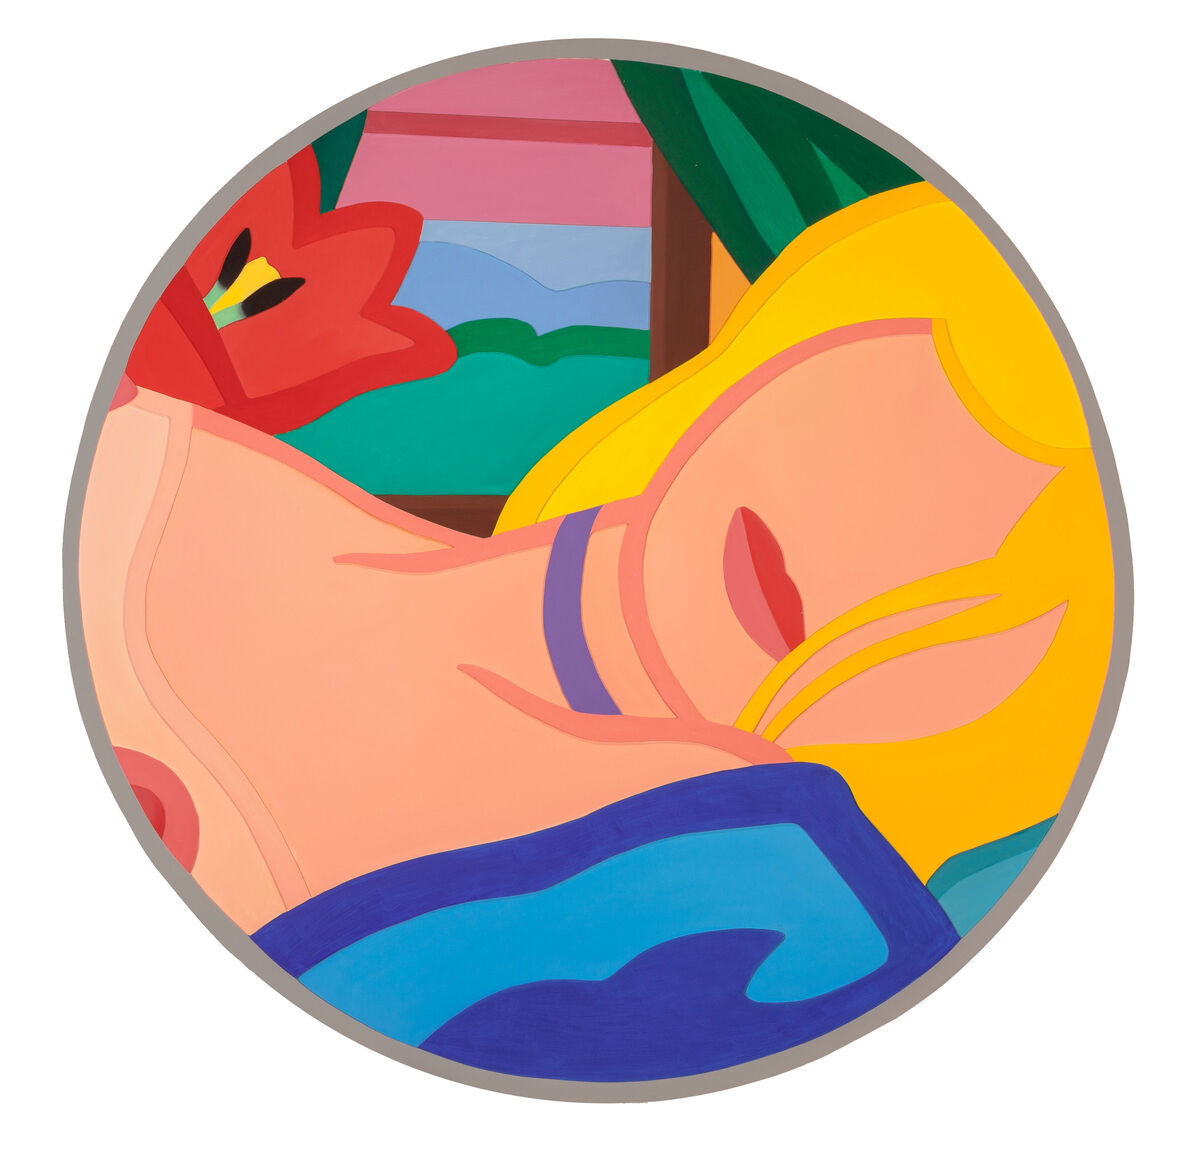 Tom Wesselmann, Blonde Vivienne (Filled In) (1985/1995) (est. $150,000–200,000). Image courtesy of Heritage Auctions.